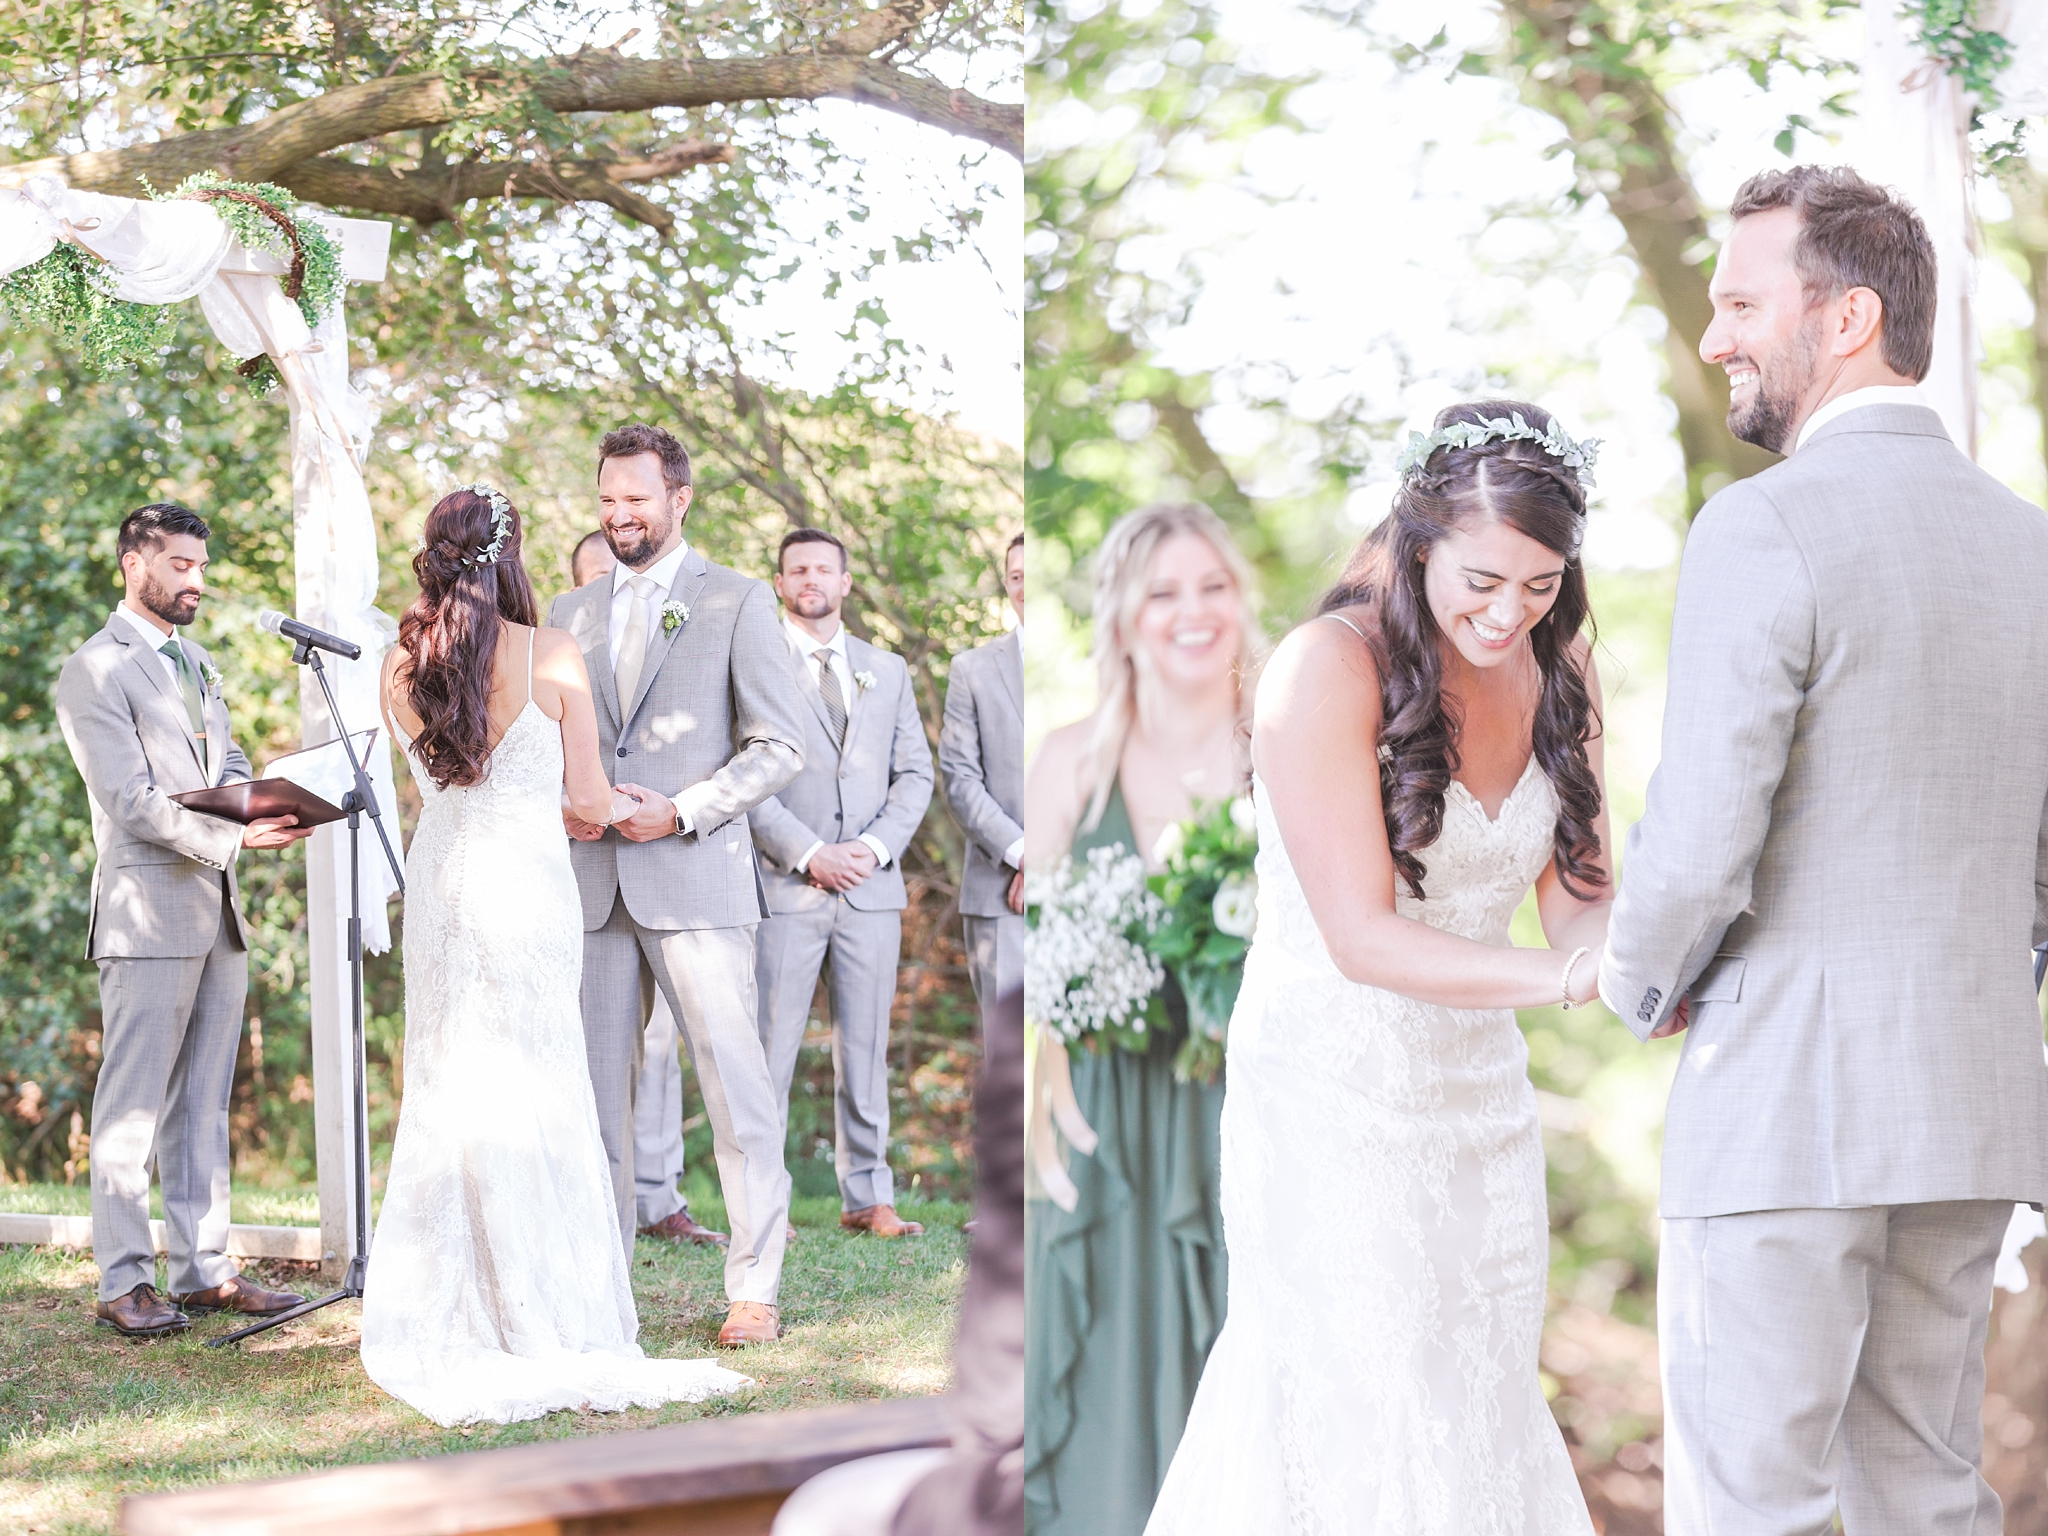 natural-rustic-wedding-photos-at-frutig-farms-the-valley-in-ann-arbor-michigan-by-courtney-carolyn-photography_0061.jpg